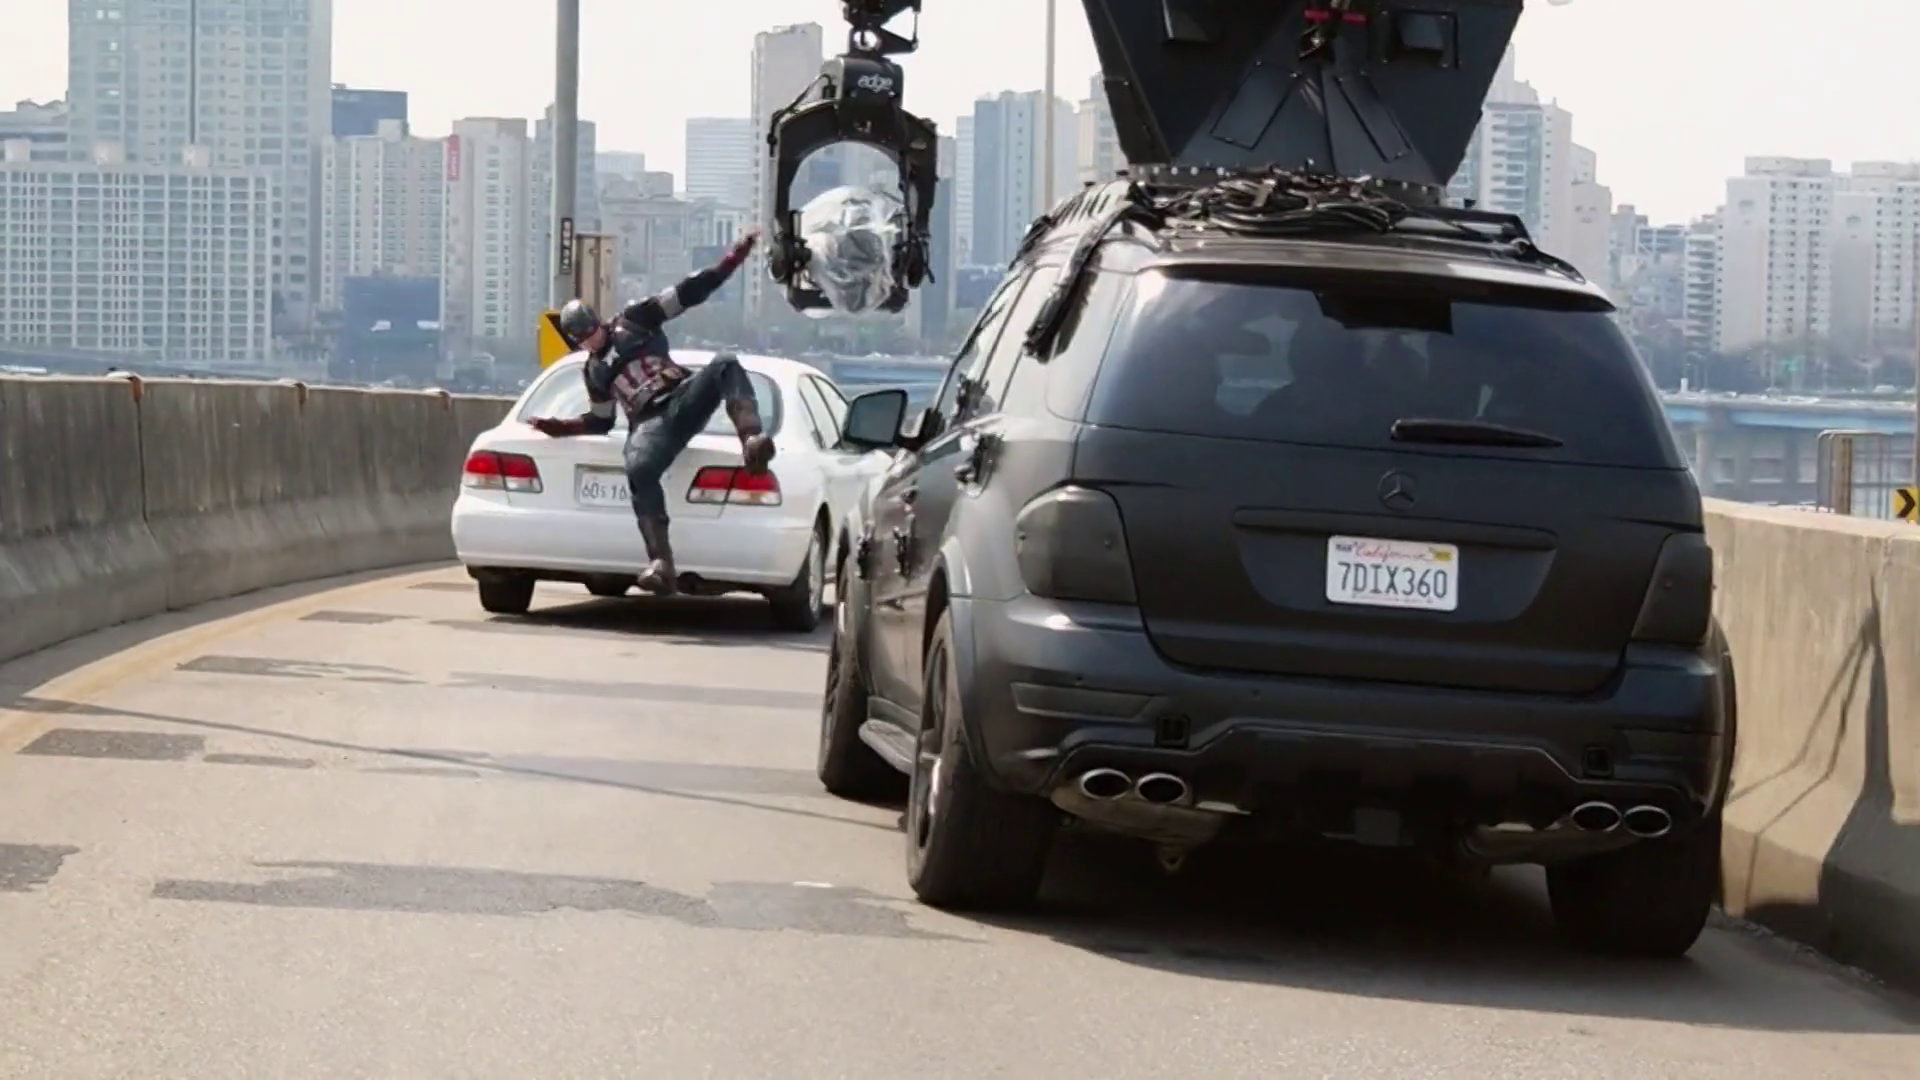 Korean Car Stunt - Avengers: Age of Ultron Behind the Scenes